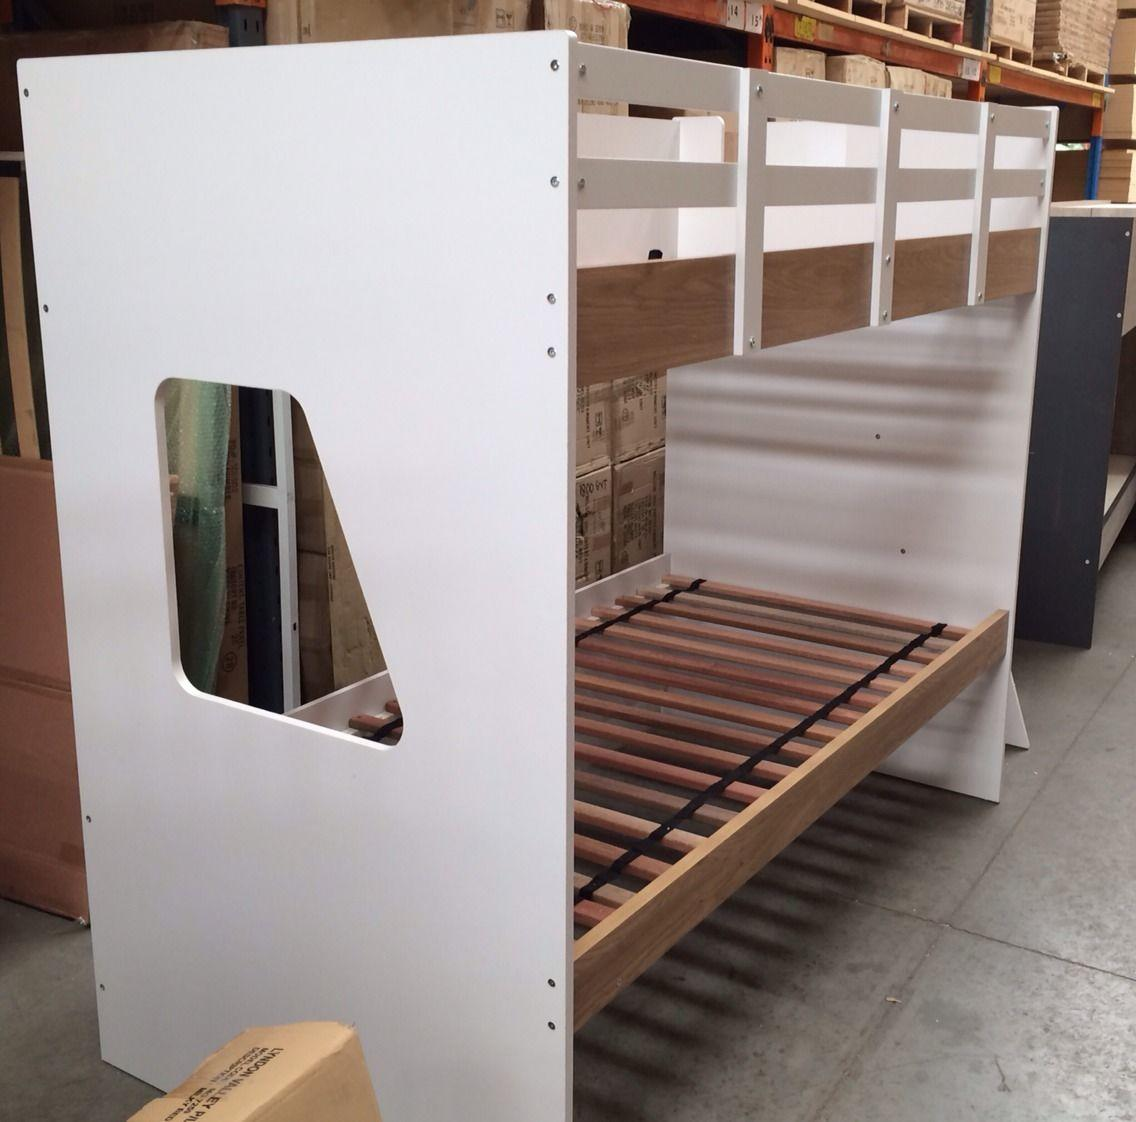 Bunk Bed Single With Trundle And Drawers New In Box New